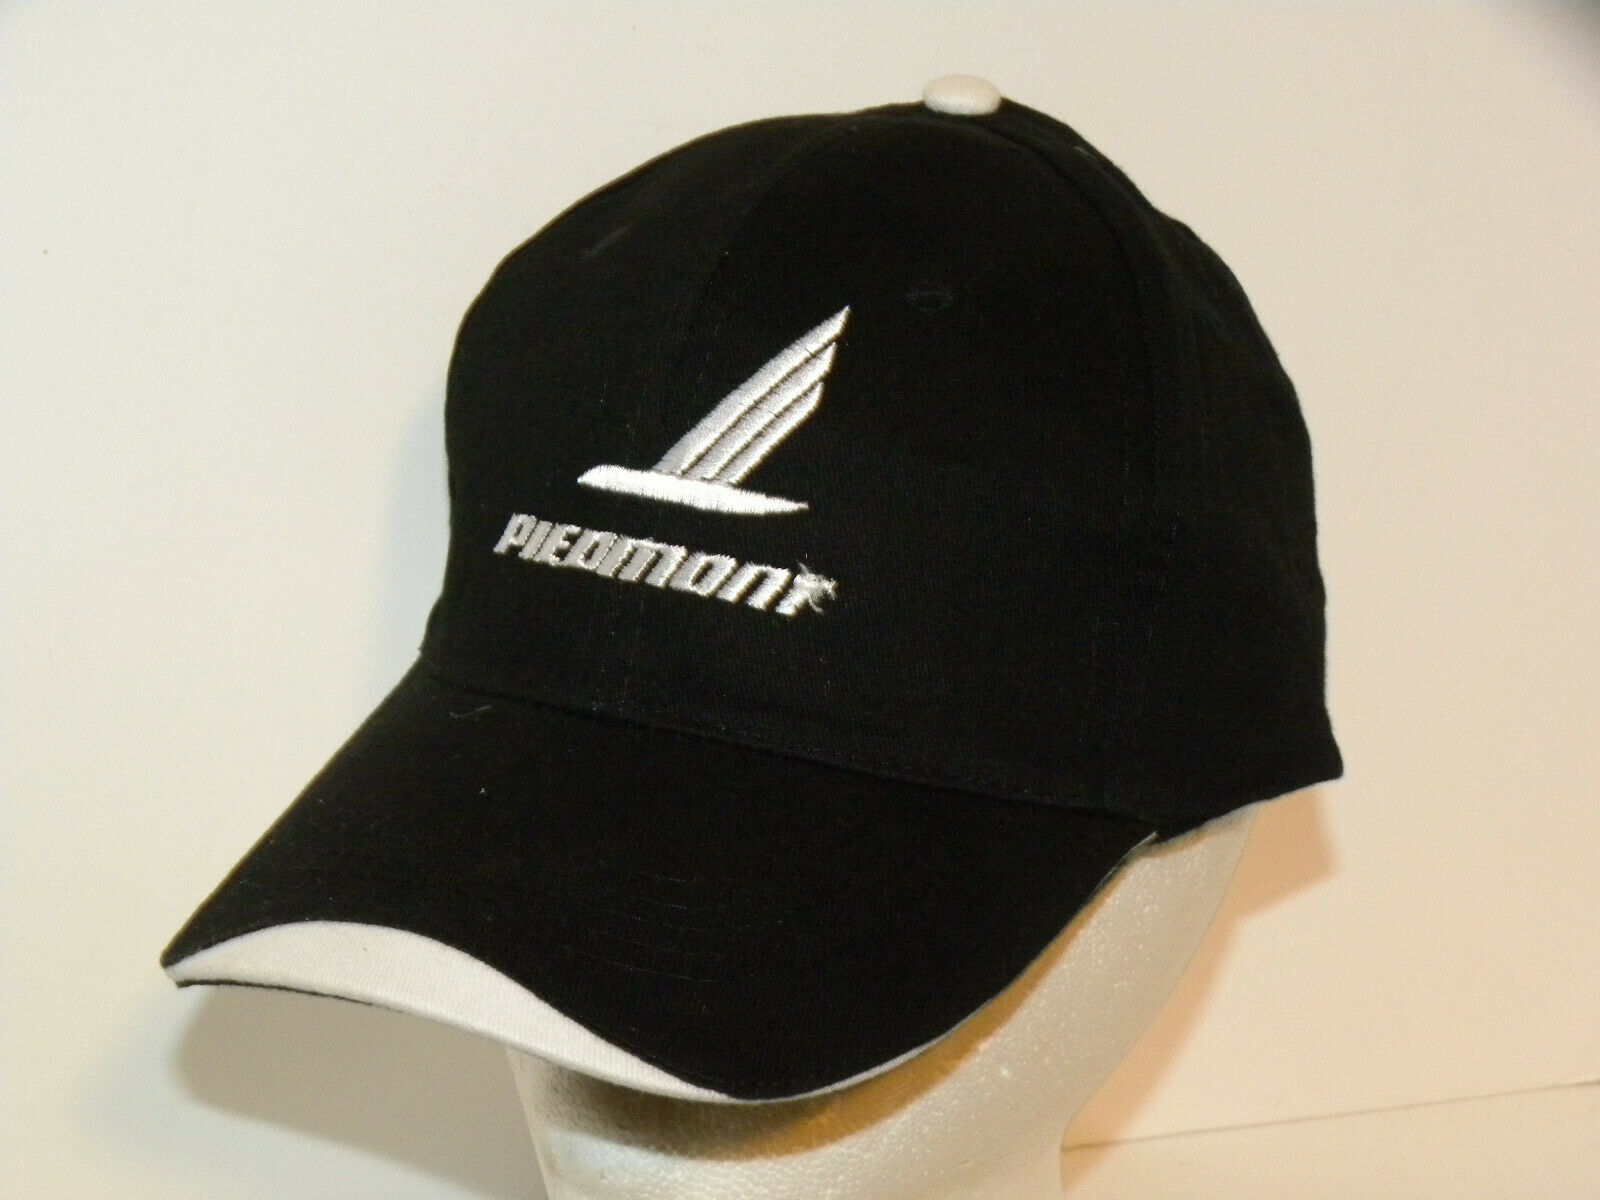 Piedmont Airlines logo  cap AWESOME BLCK AND WHITE WITH VELCRO BACKS